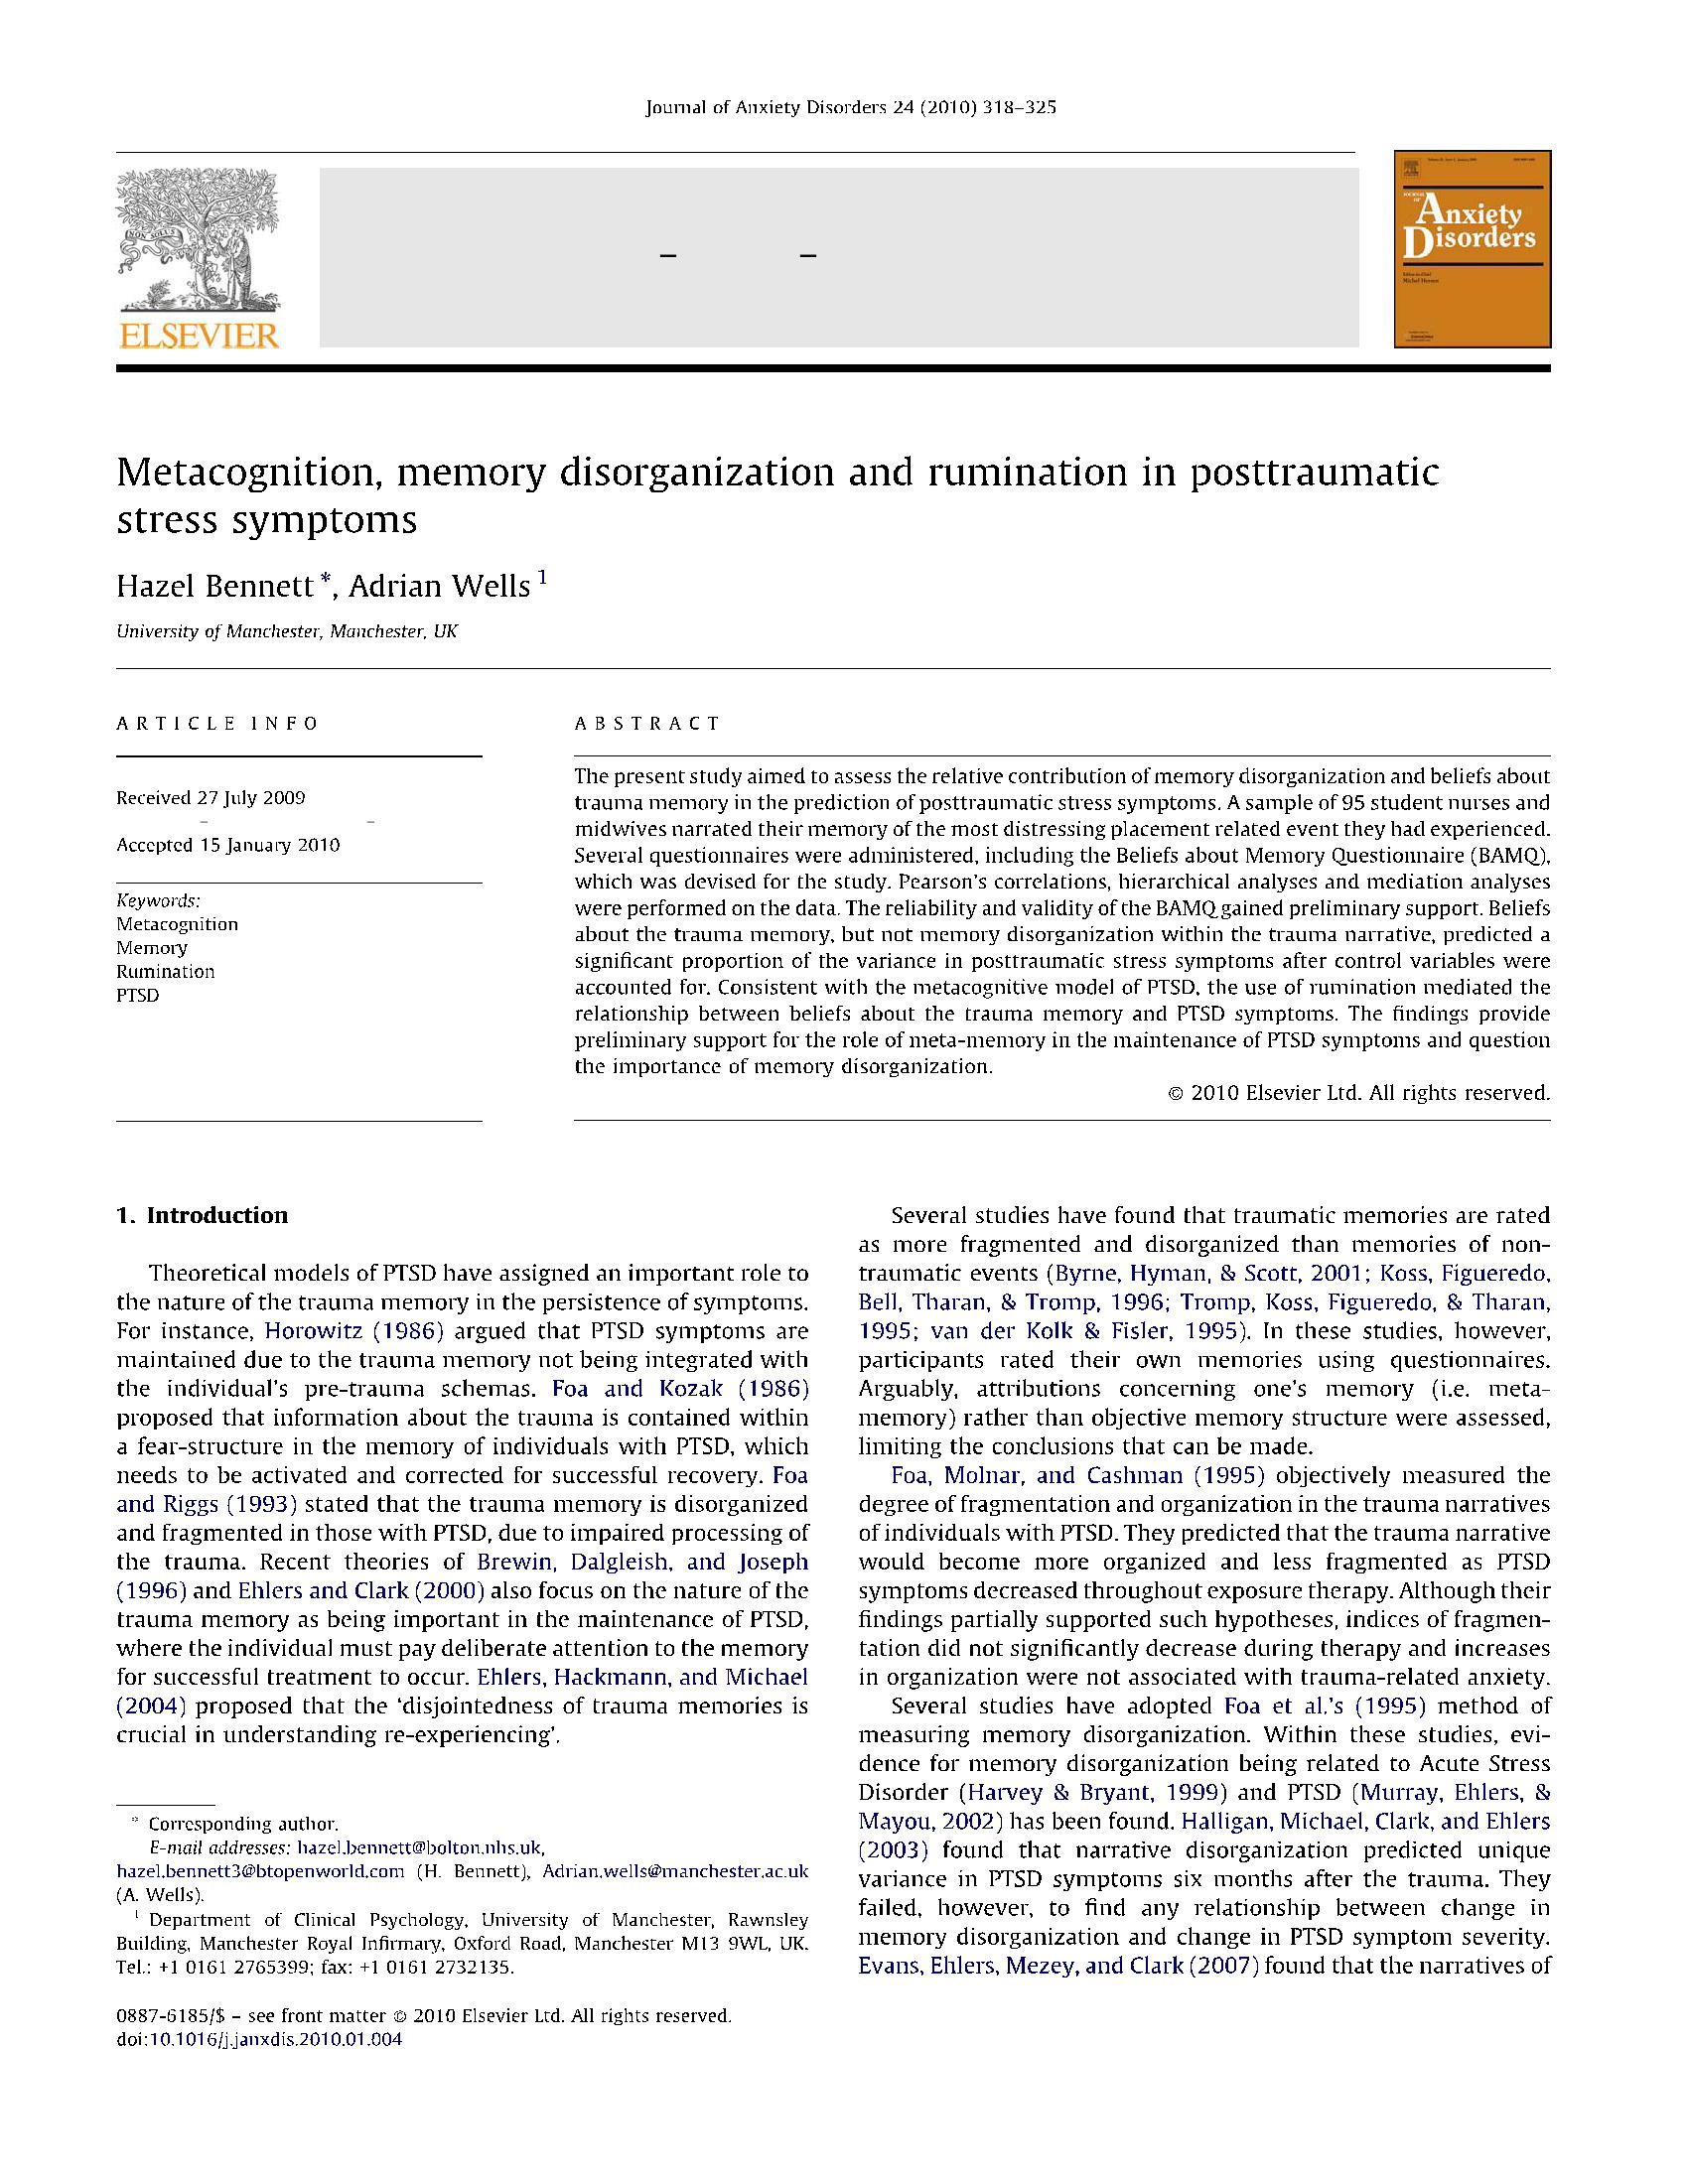 Metacognition   memory disorganization and rumination in posttraumatic stress symptoms 8